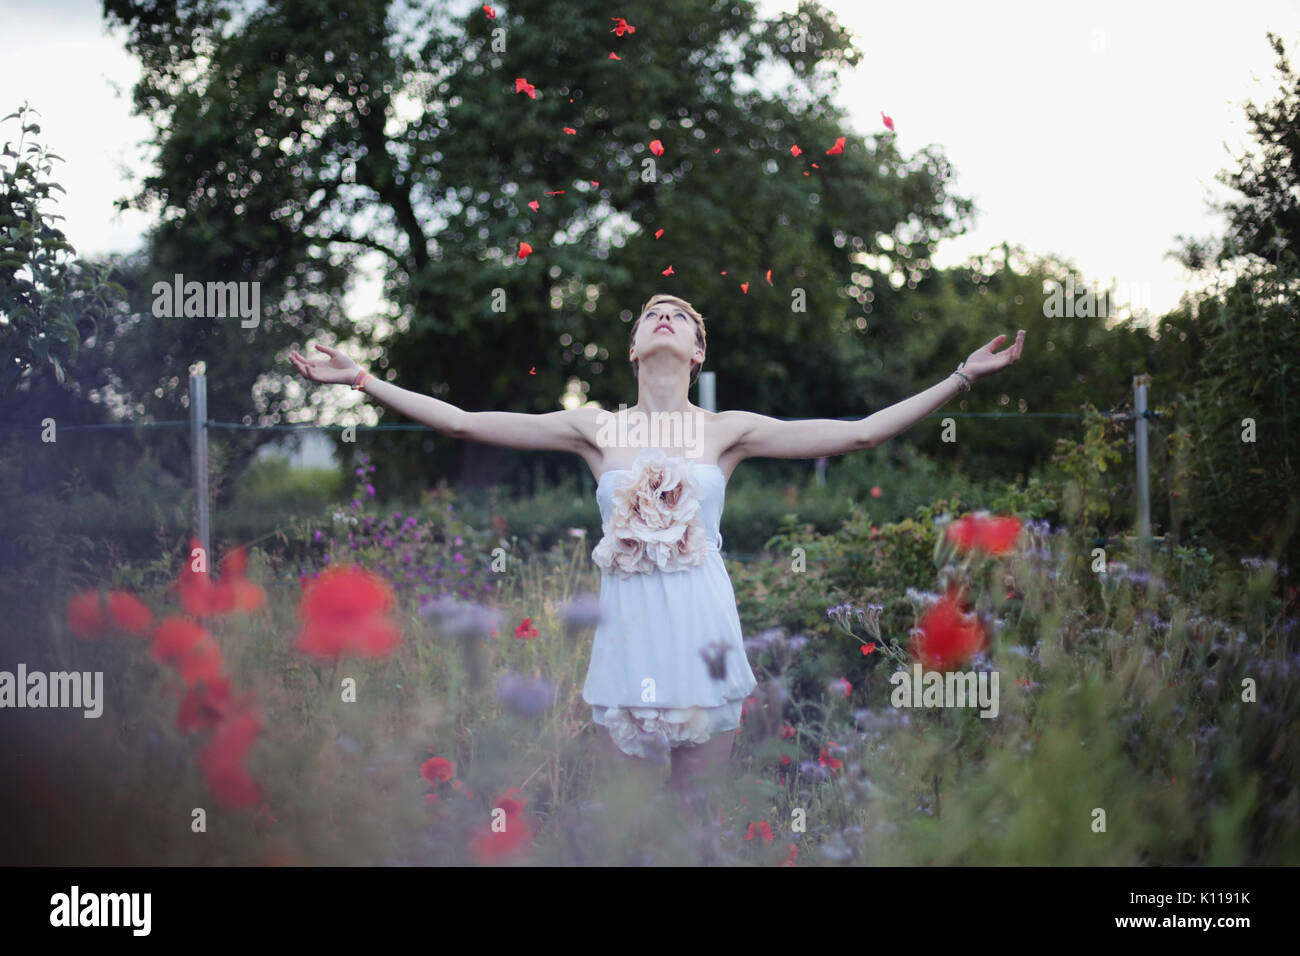 Young woman throwing petals - Stock Image